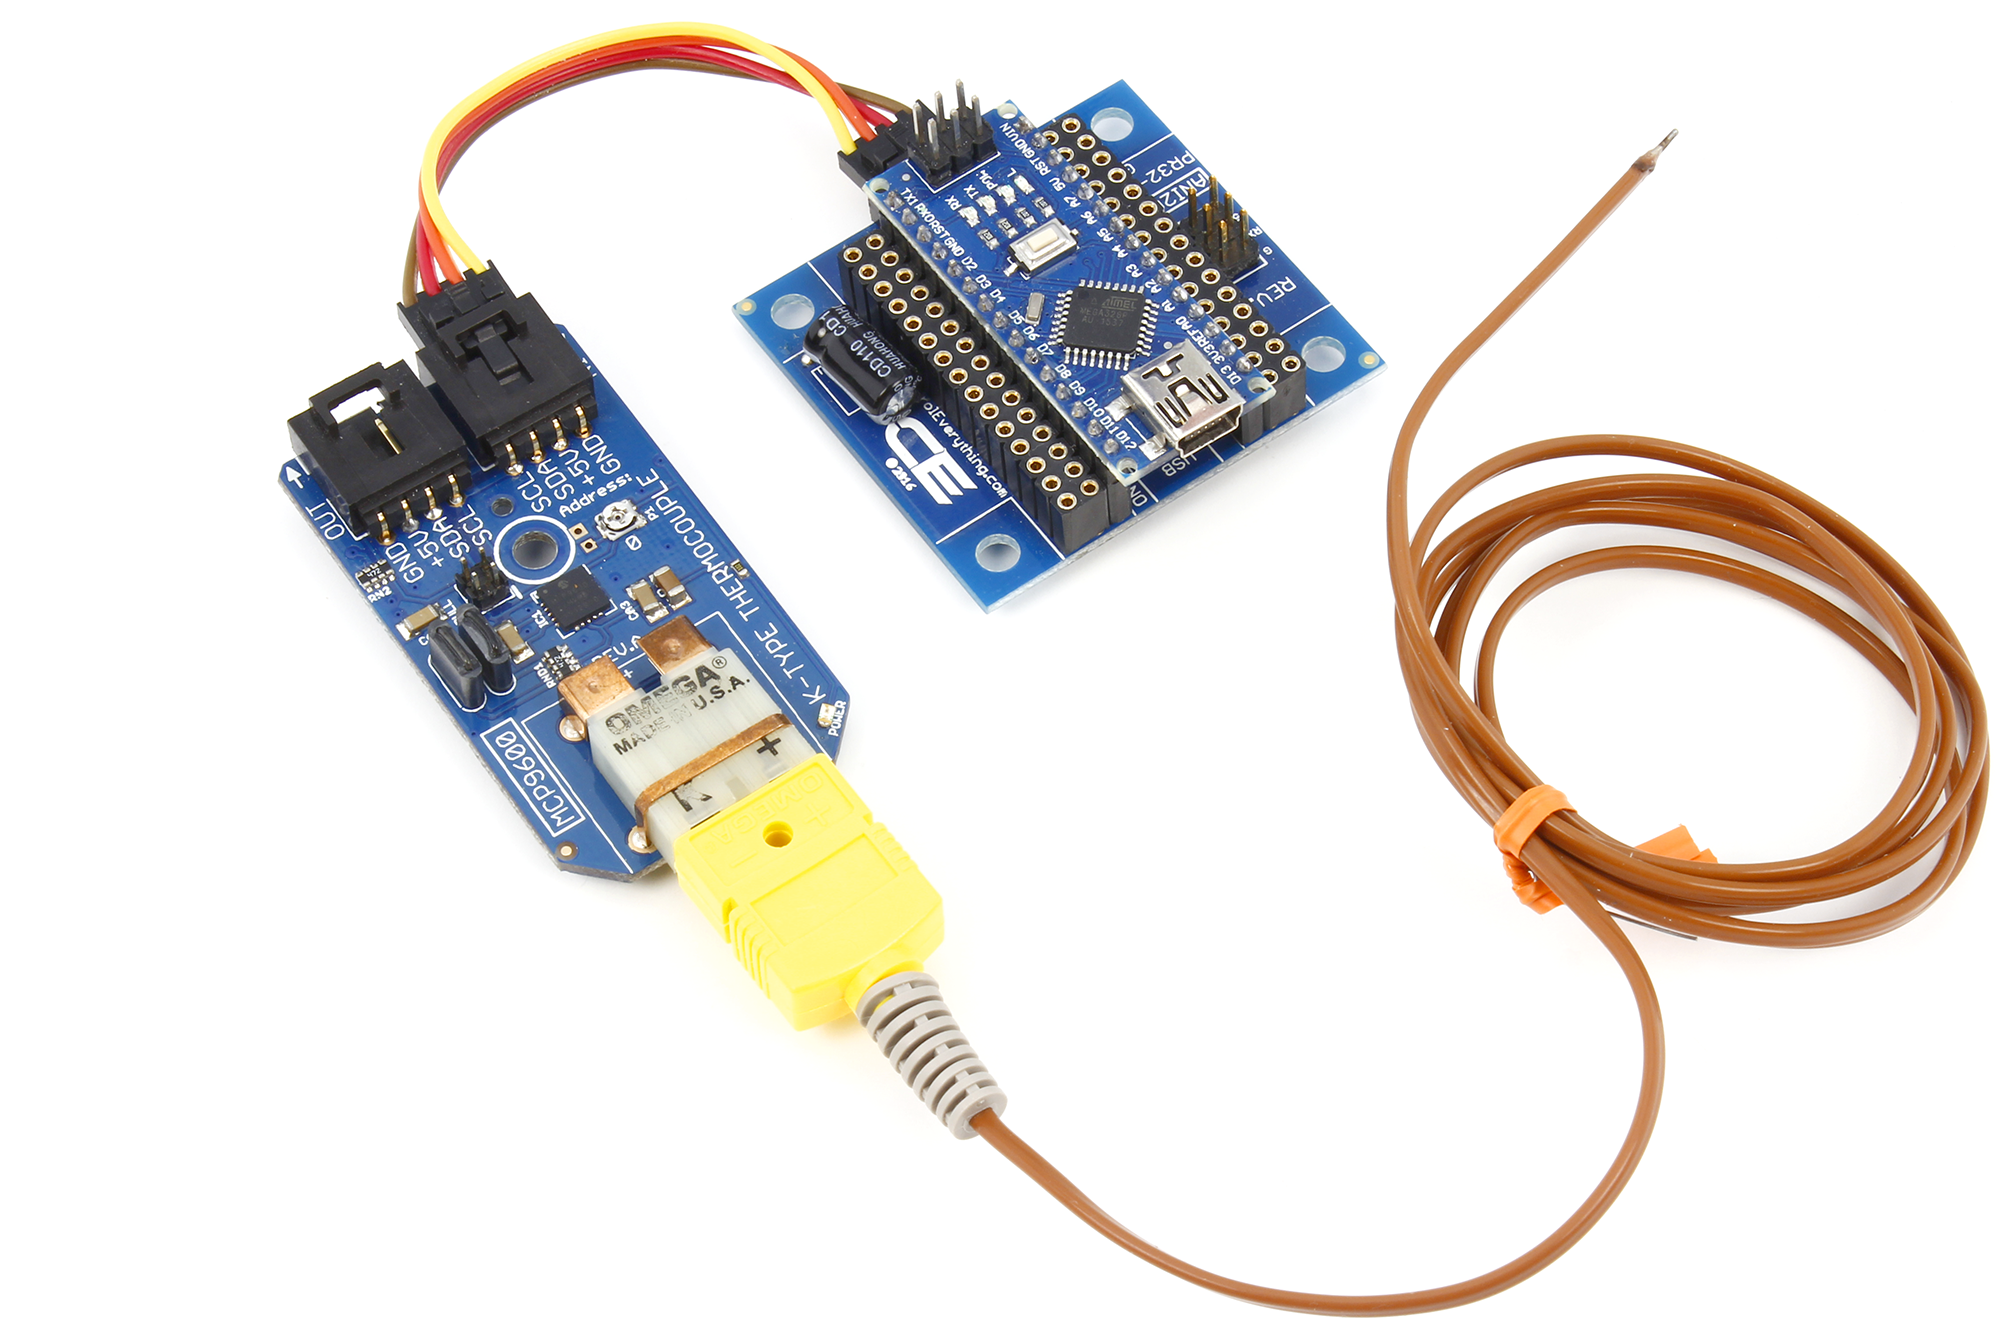 arduino theromocouple module